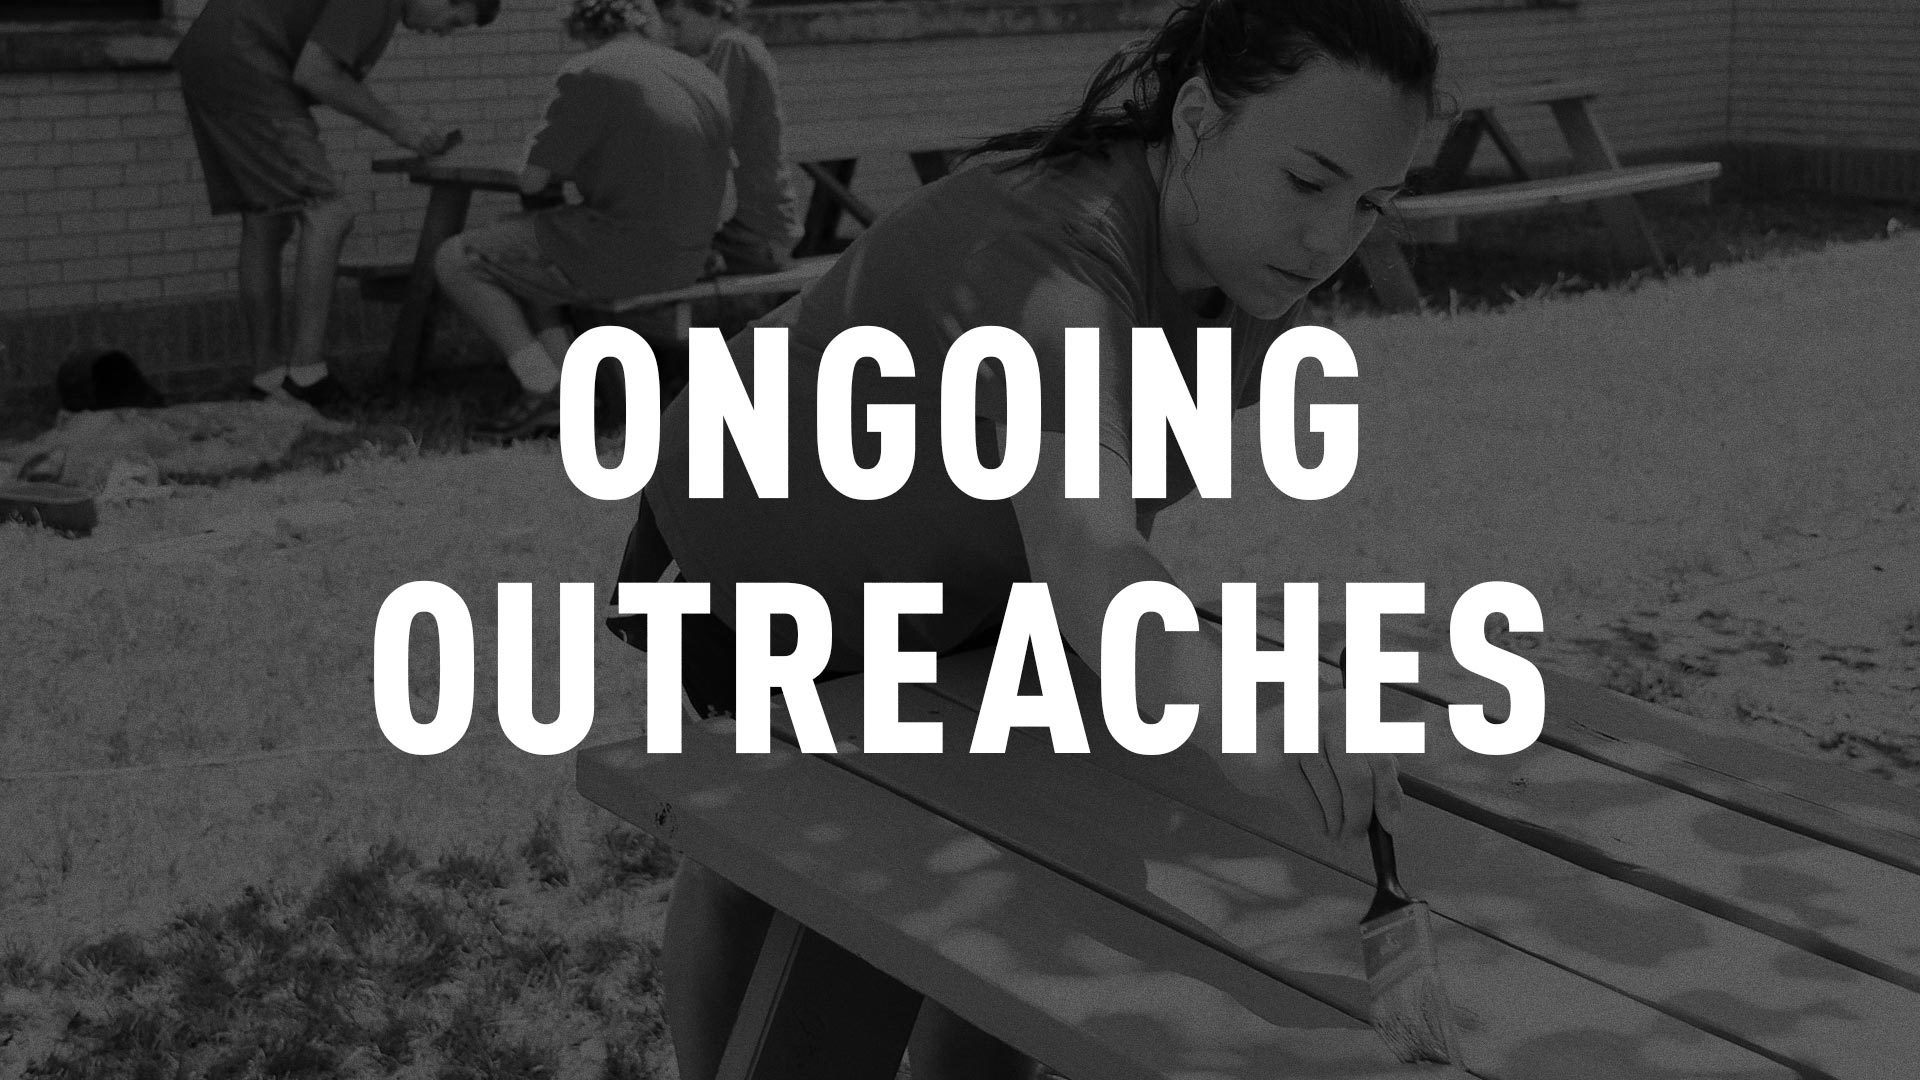 Ongoing Outreaches